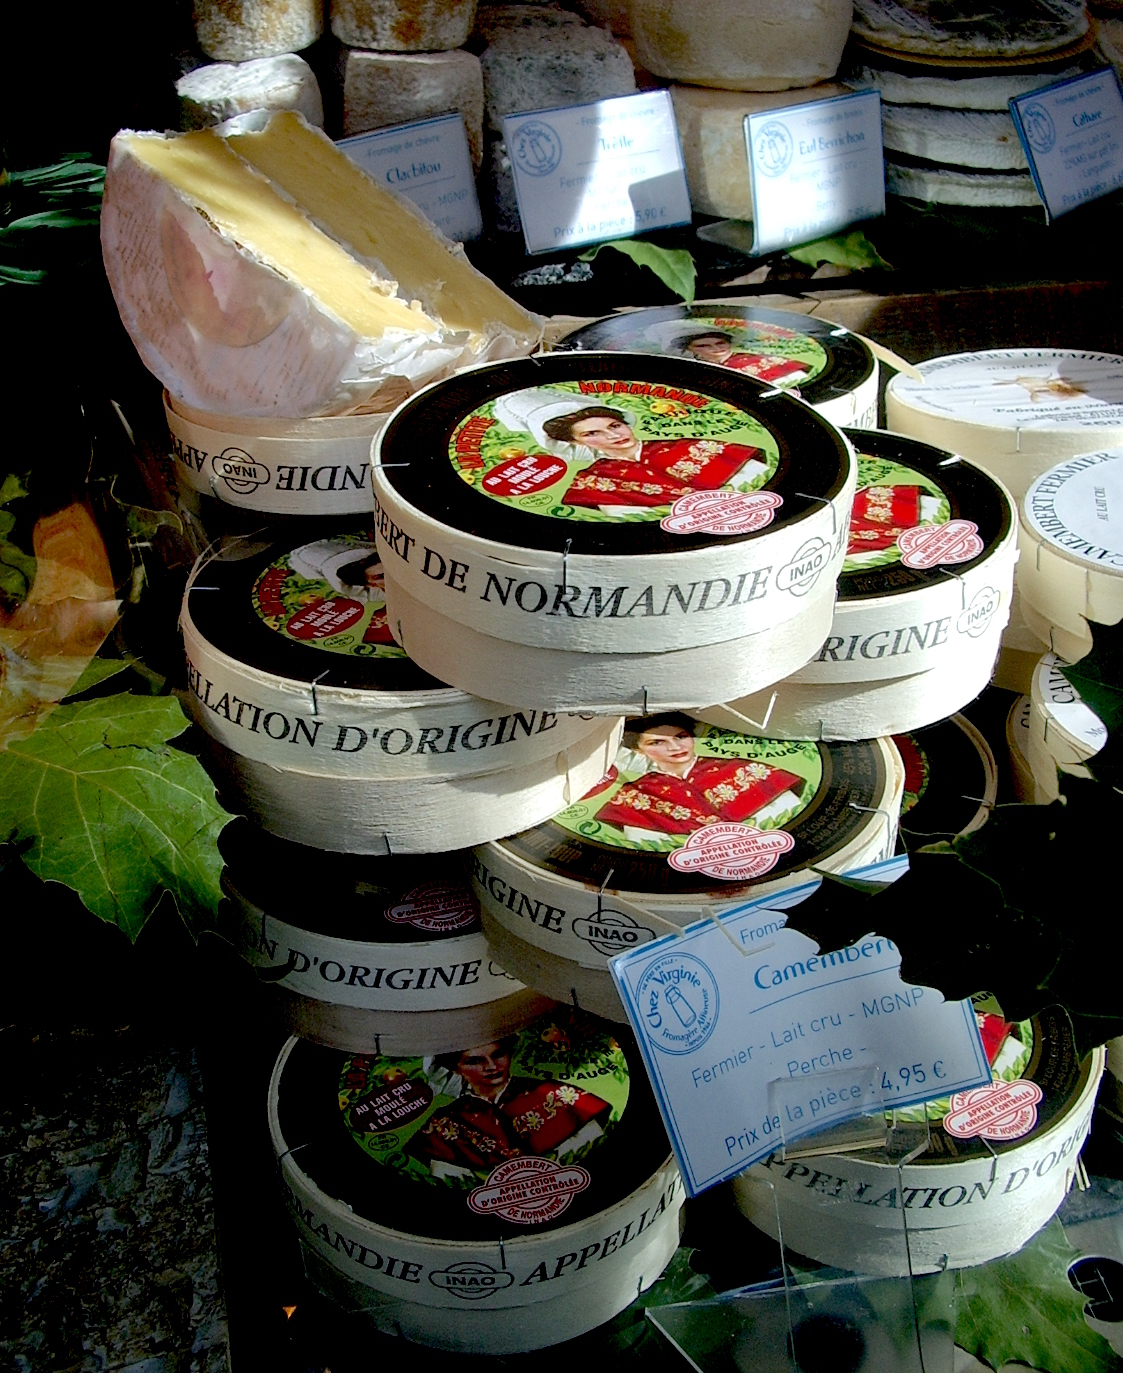 Camembert de Normandie (c) Jennifer CC BY-NC-ND 2.0